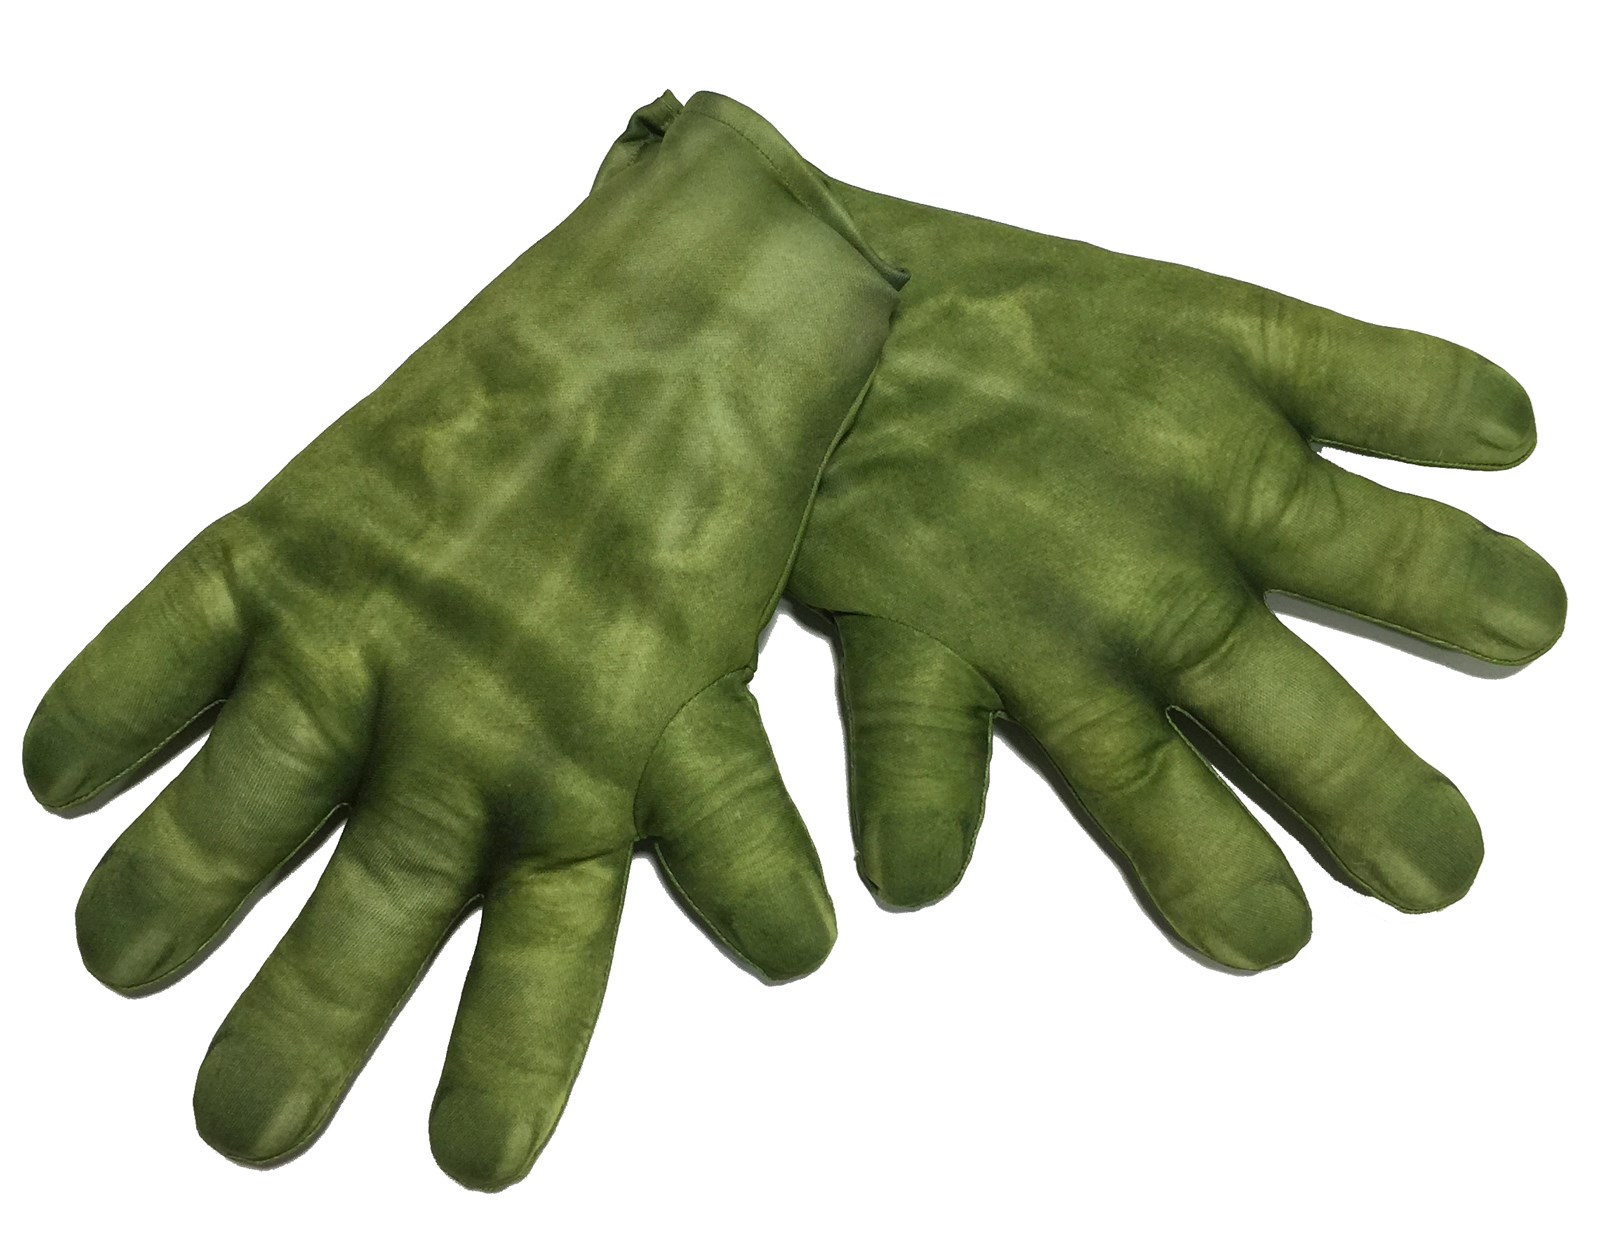 Avengers 2 - Age of Ultron: Hulk Gloves For Kids One-Size